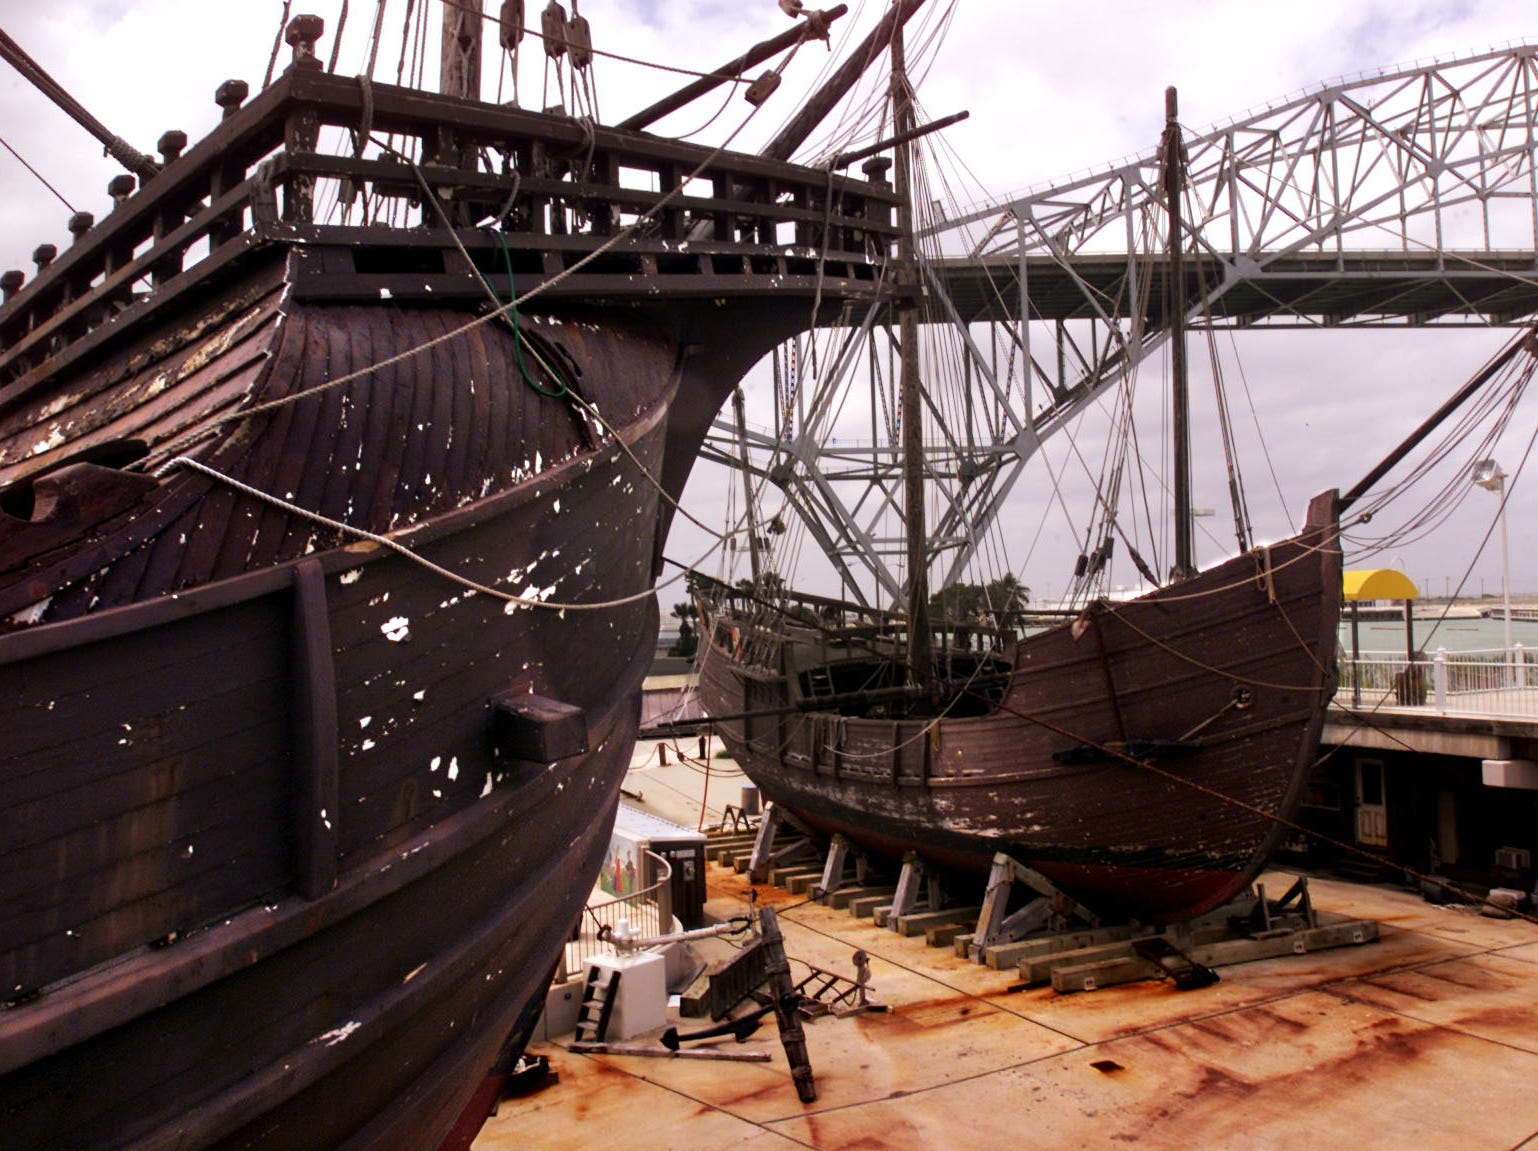 The Santa Maria at left and the Pinta on the right, at the Corpus Christi Museum of Science and History in April 2001.